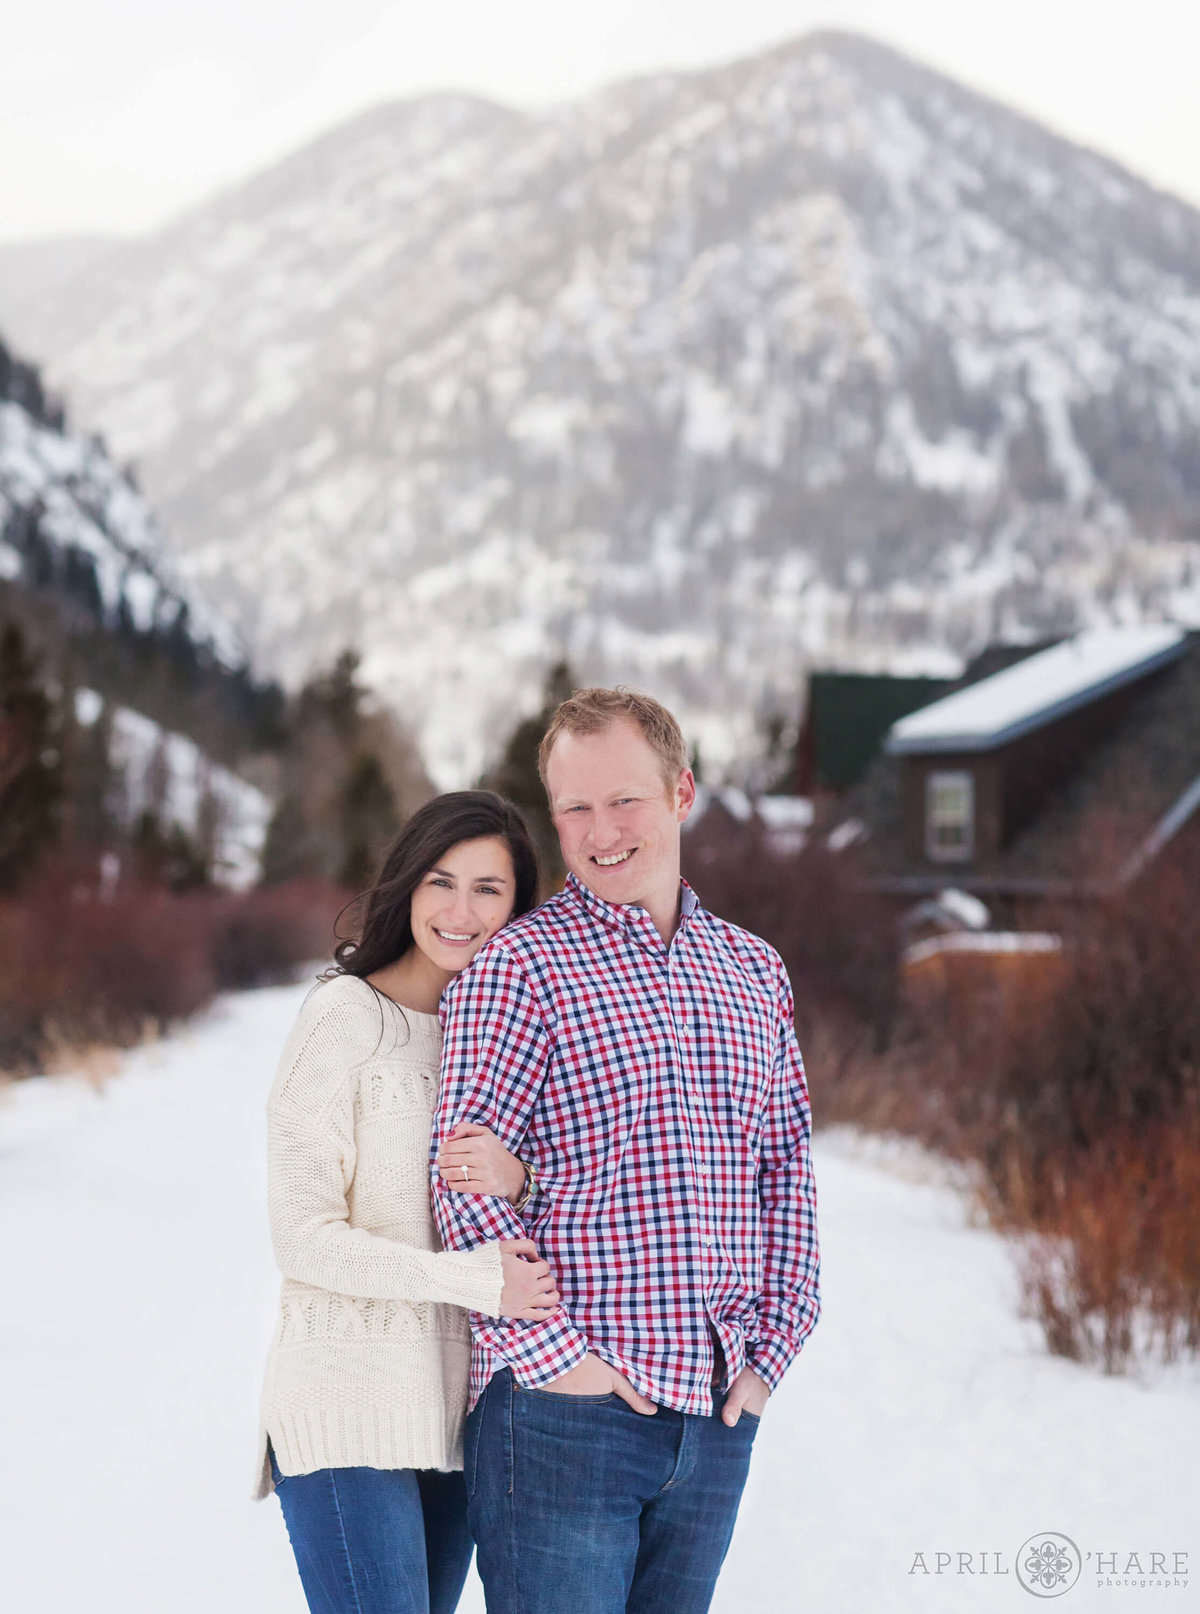 Frisco Colorado Winter Snowy Engagement Photography